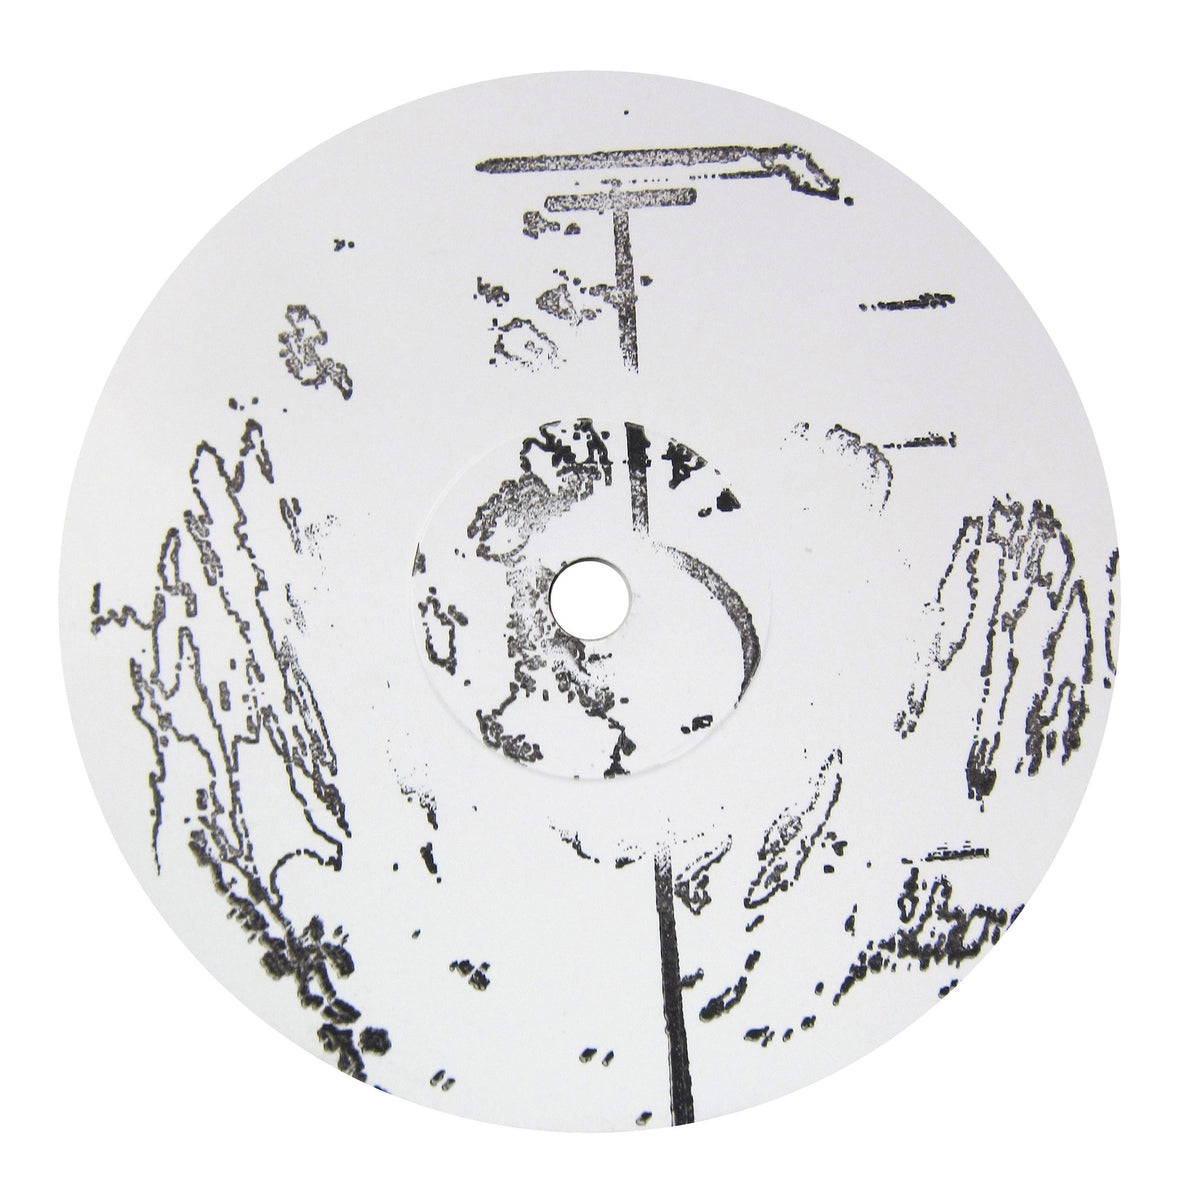 LUH: I&I / Lost Under Heaven Vinyl 12""